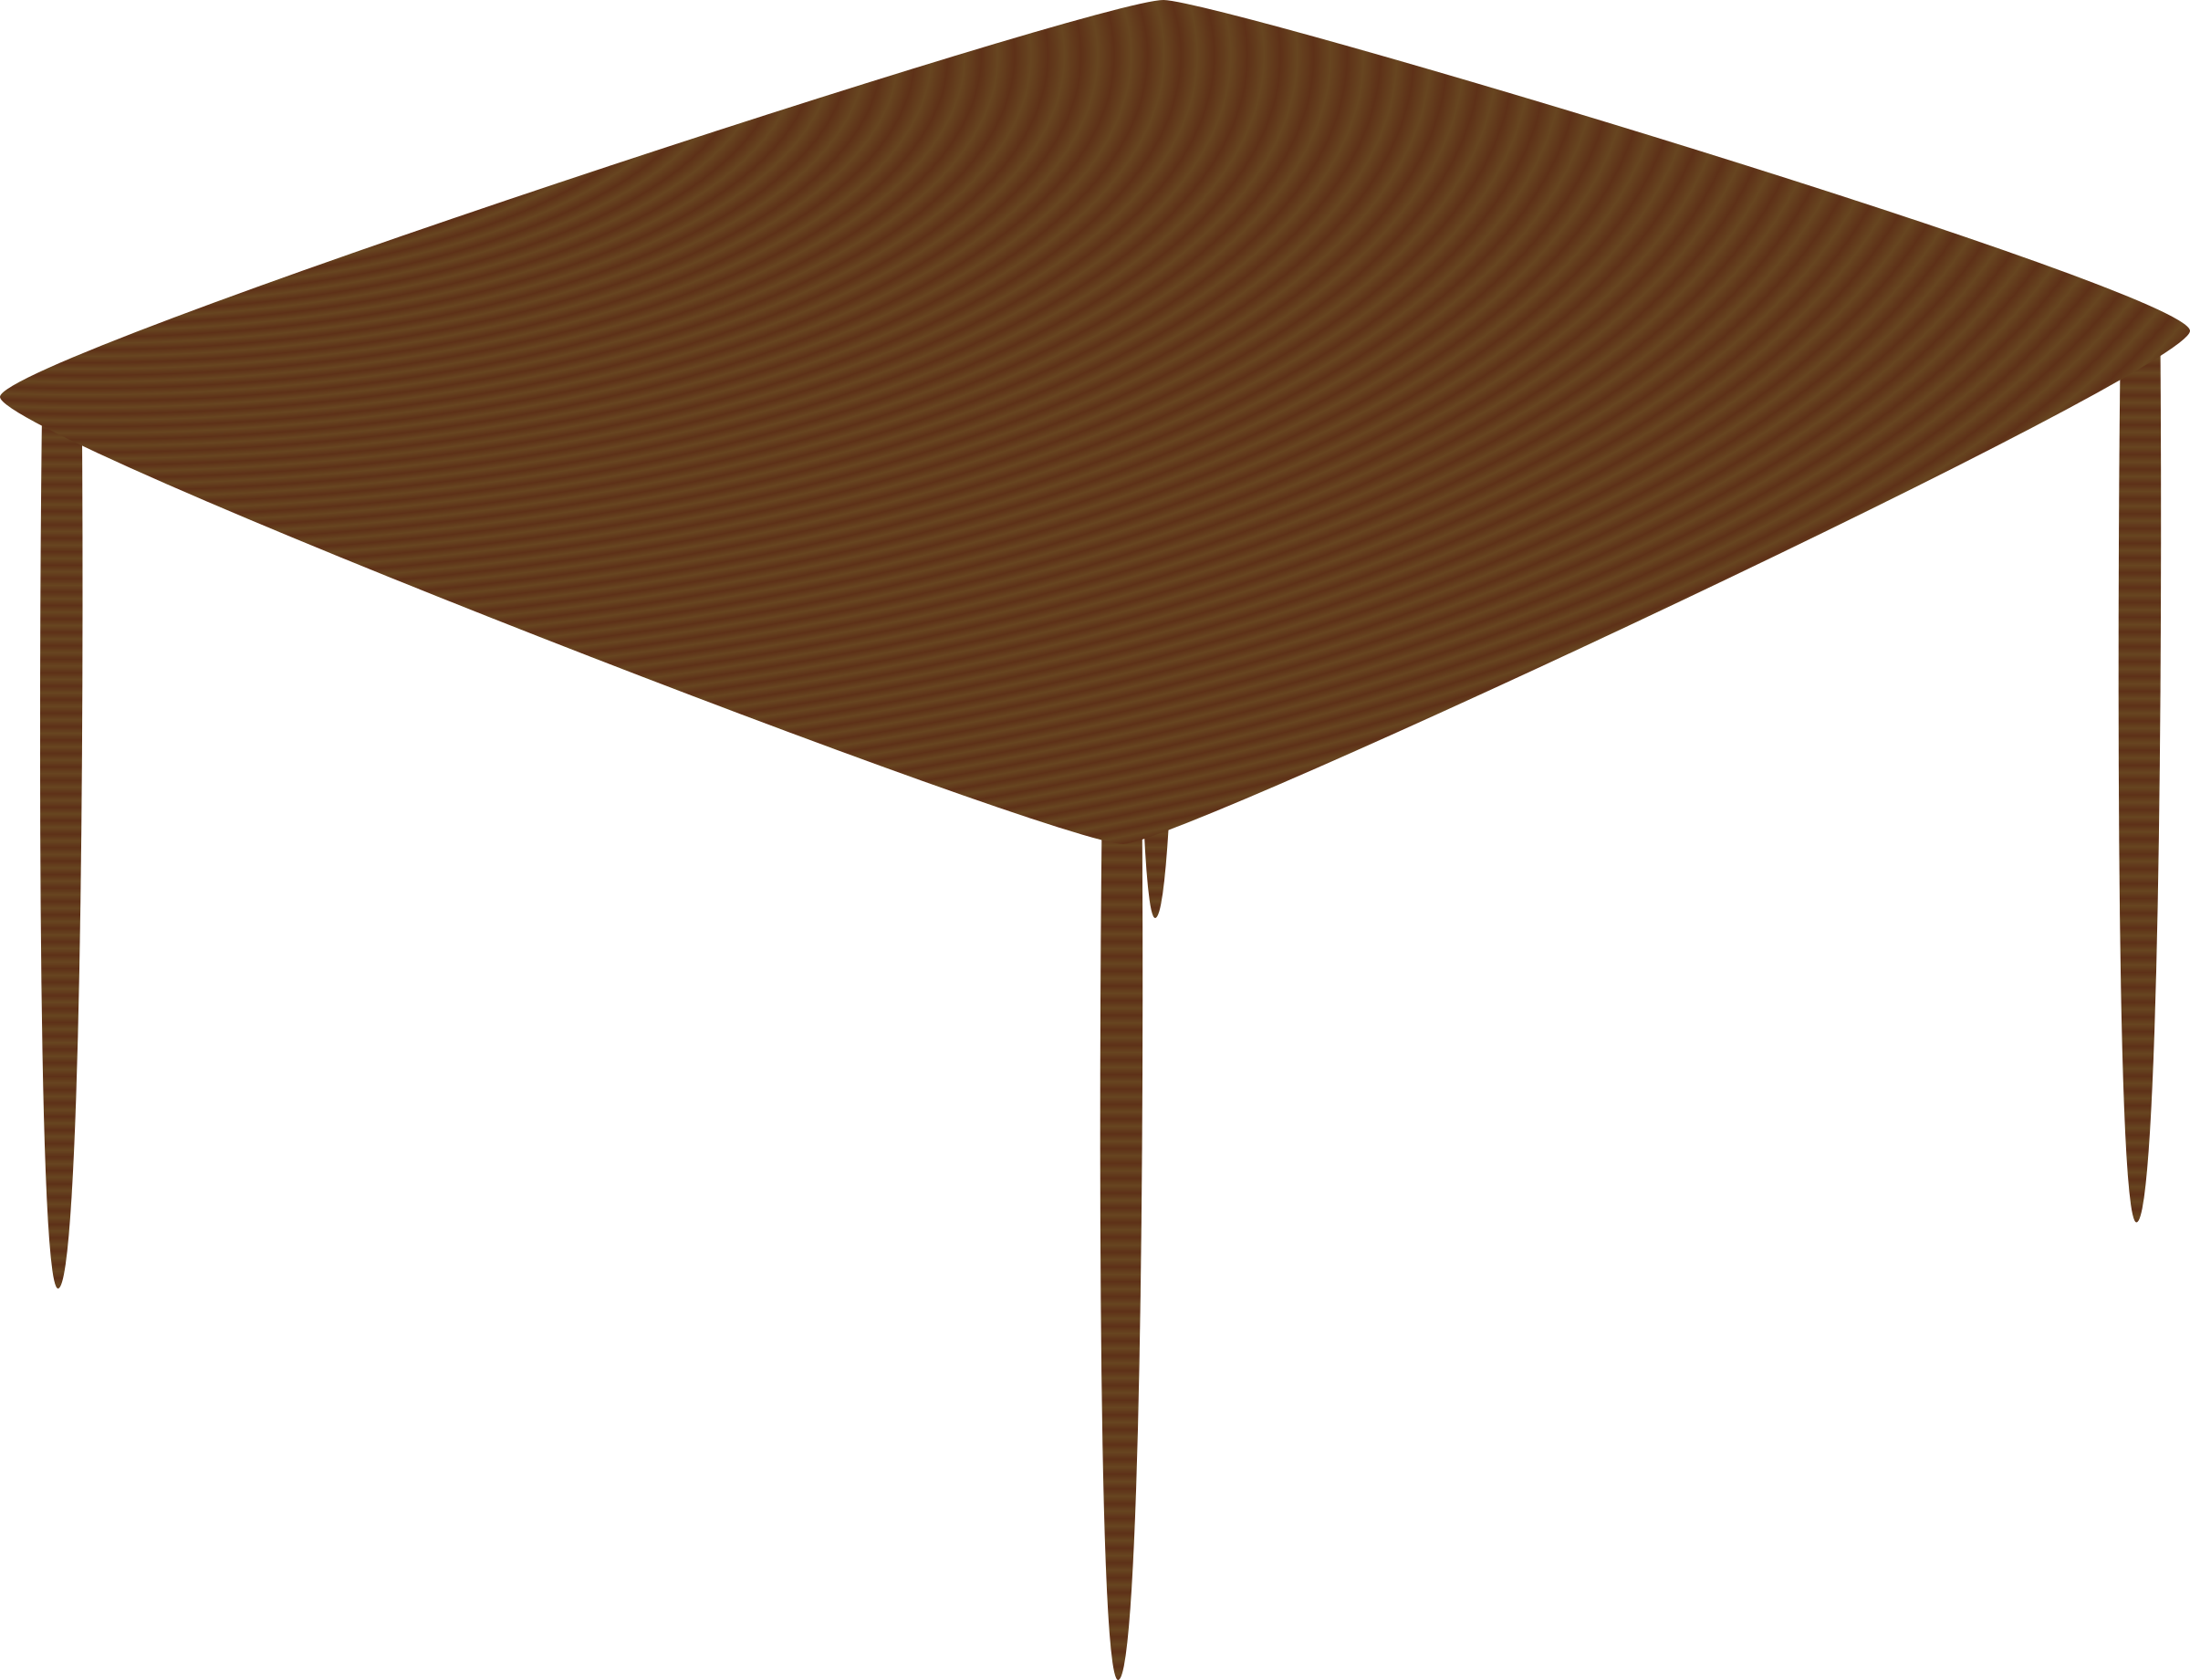 Desk clipart square table. Small big image png